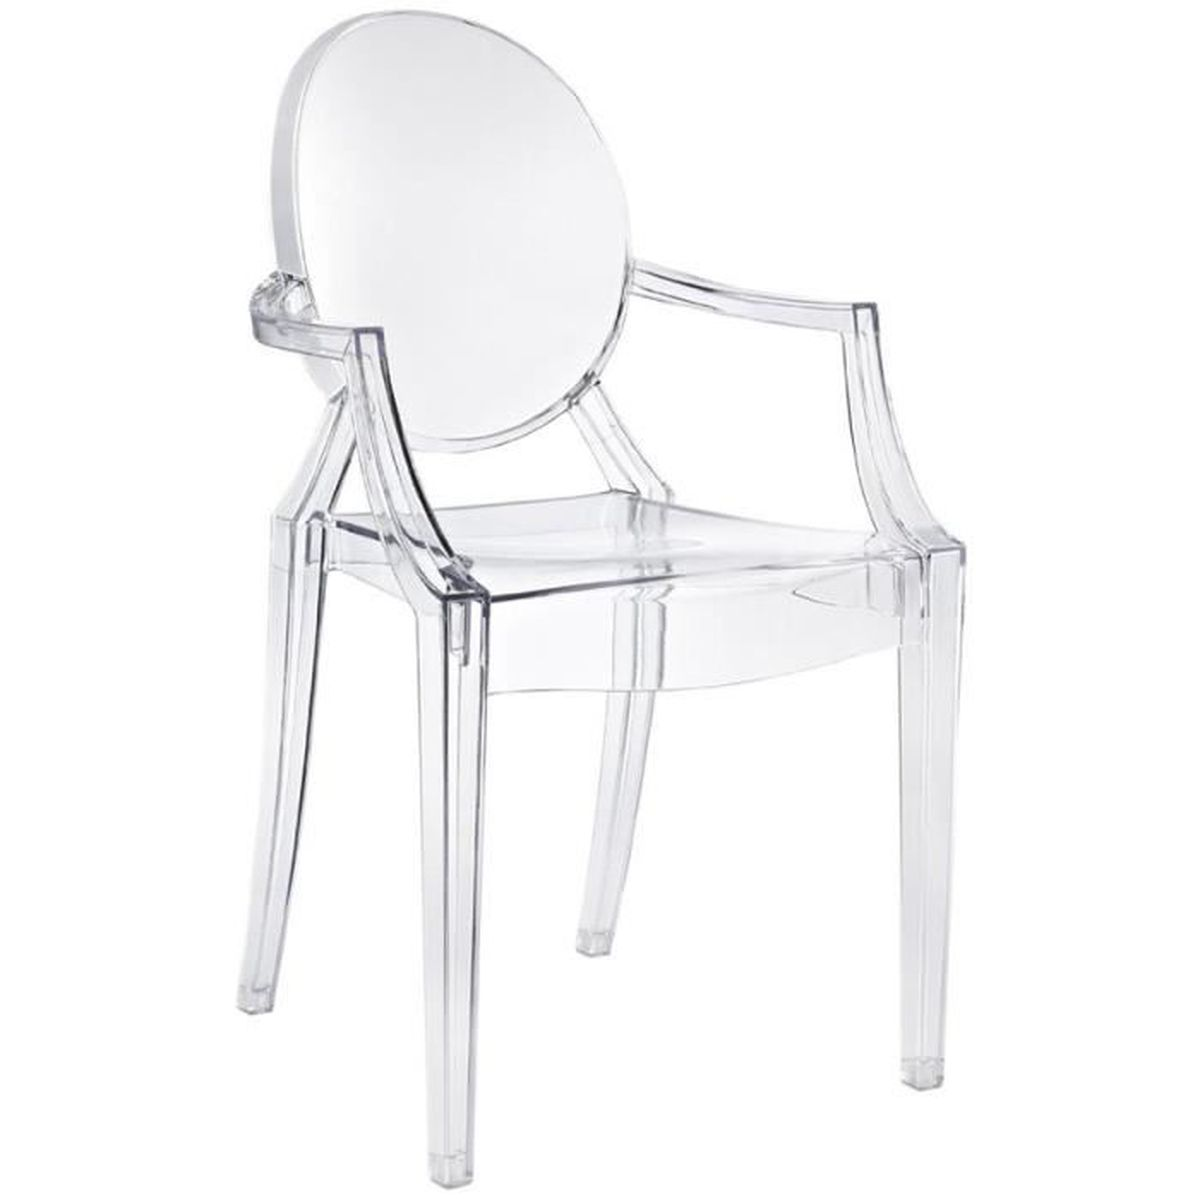 Chaise Design Inspiree Kartell Philippe Starck Transparente Achat